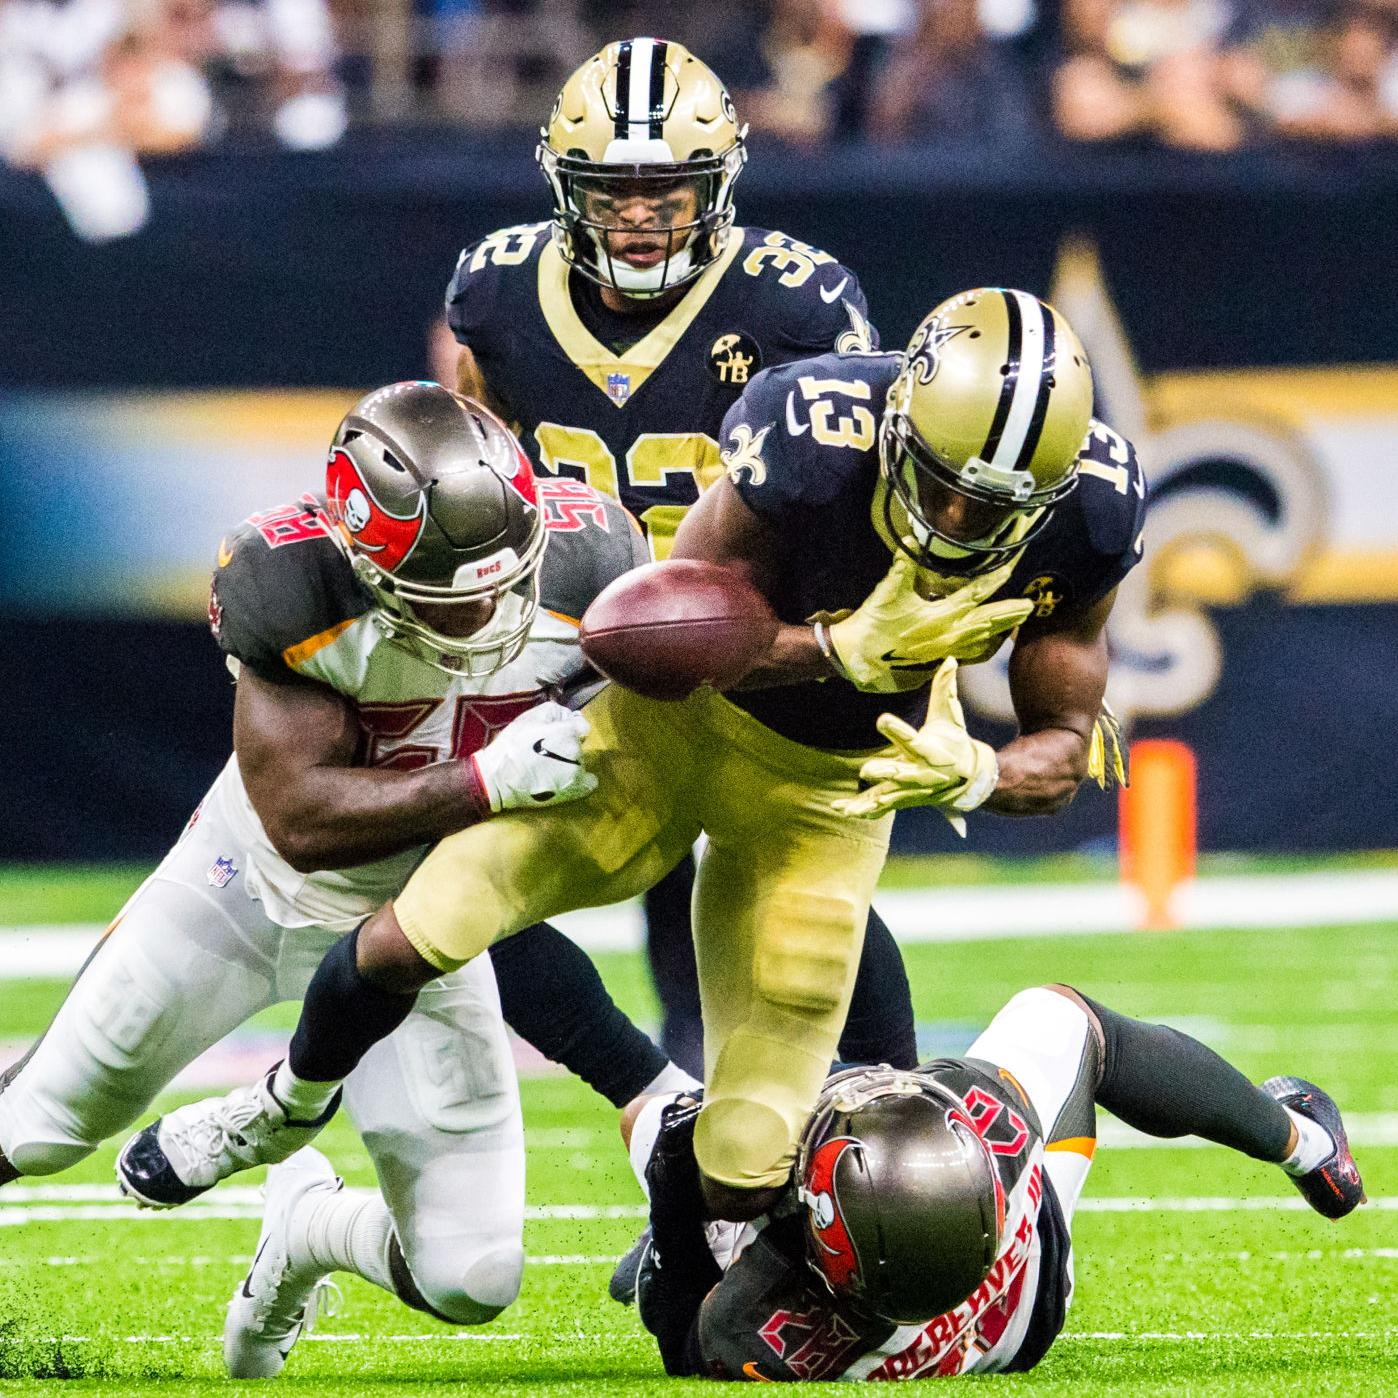 Saints at Buccaneers gameday preview: See keys to game, expert